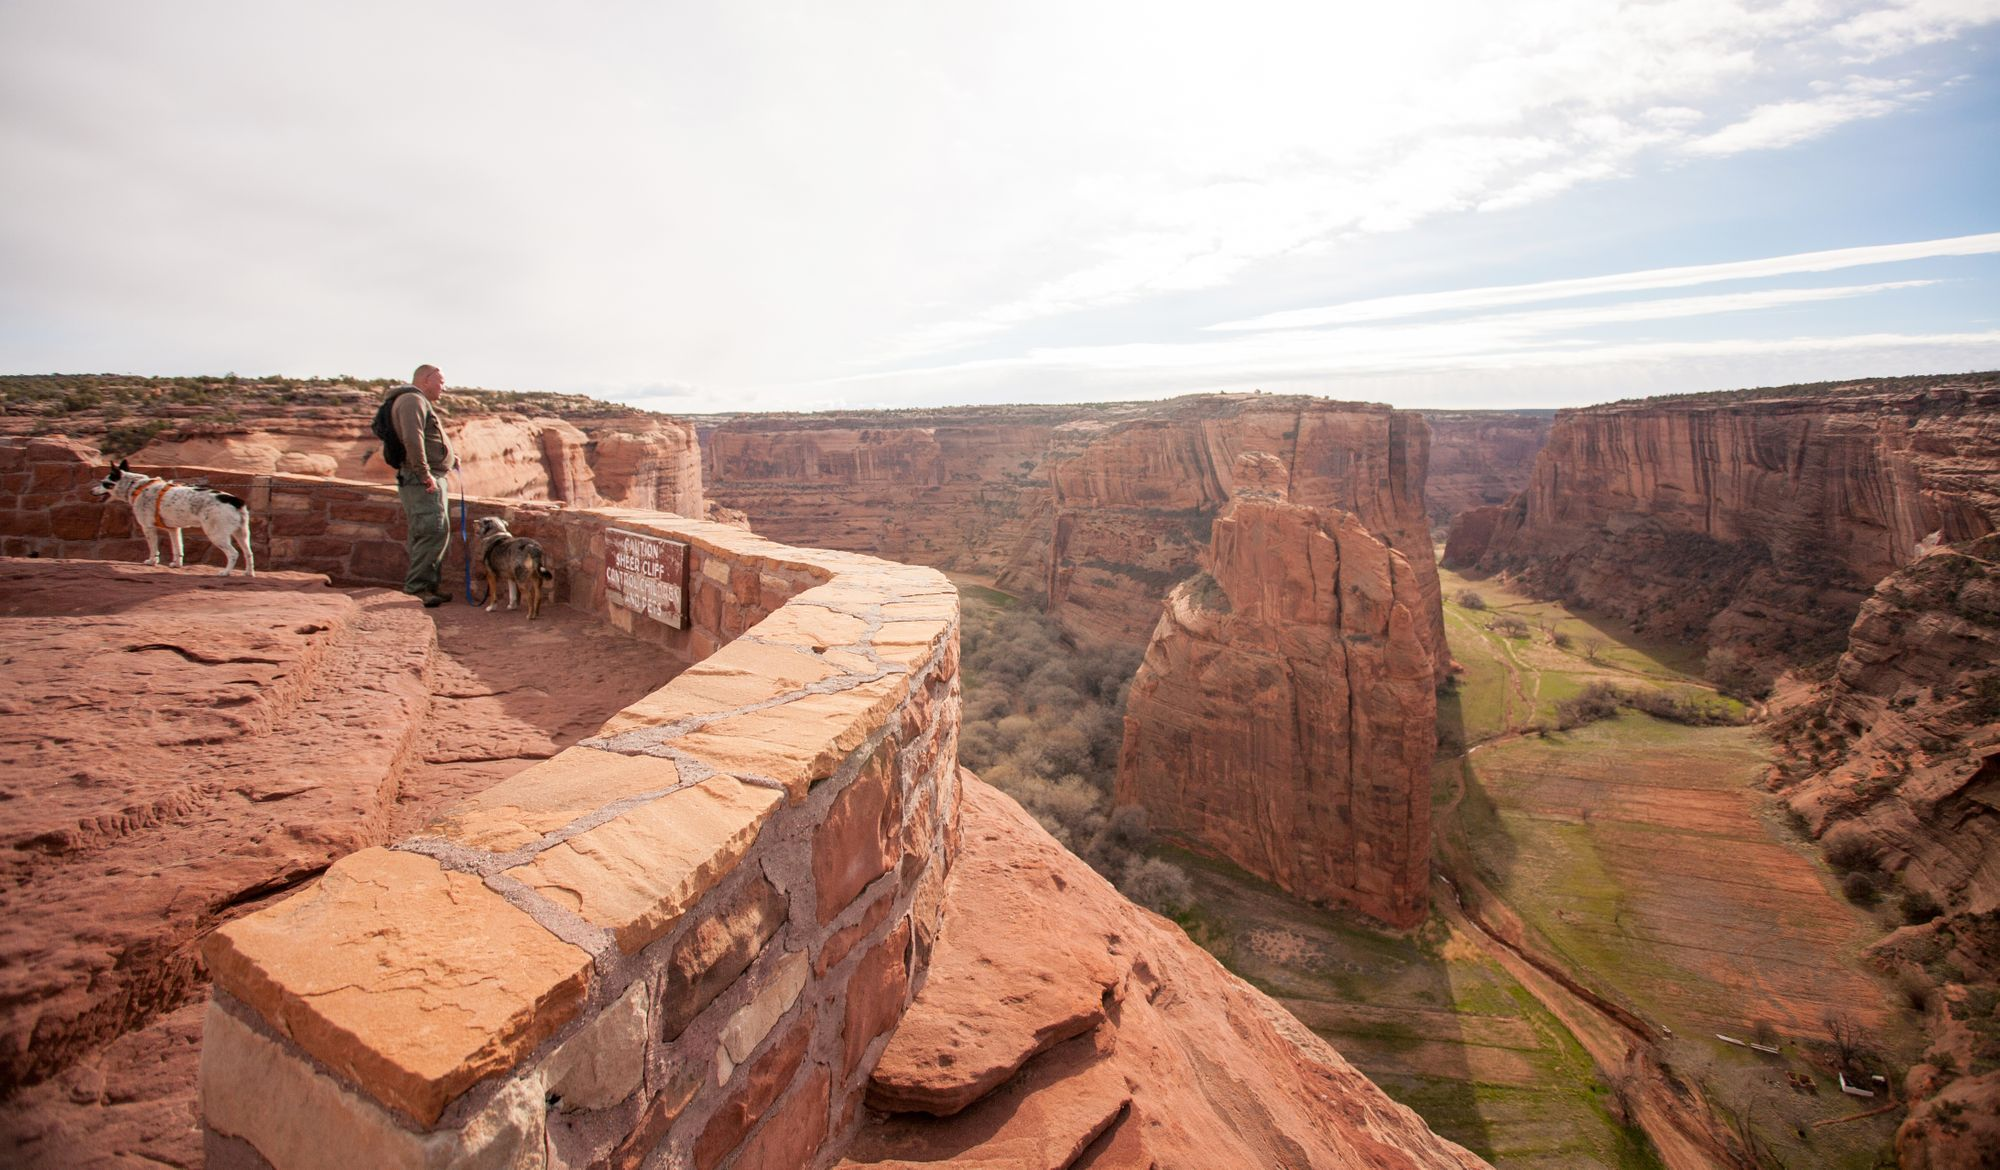 Visiting Canyon de Chelly National Monument with Dogs